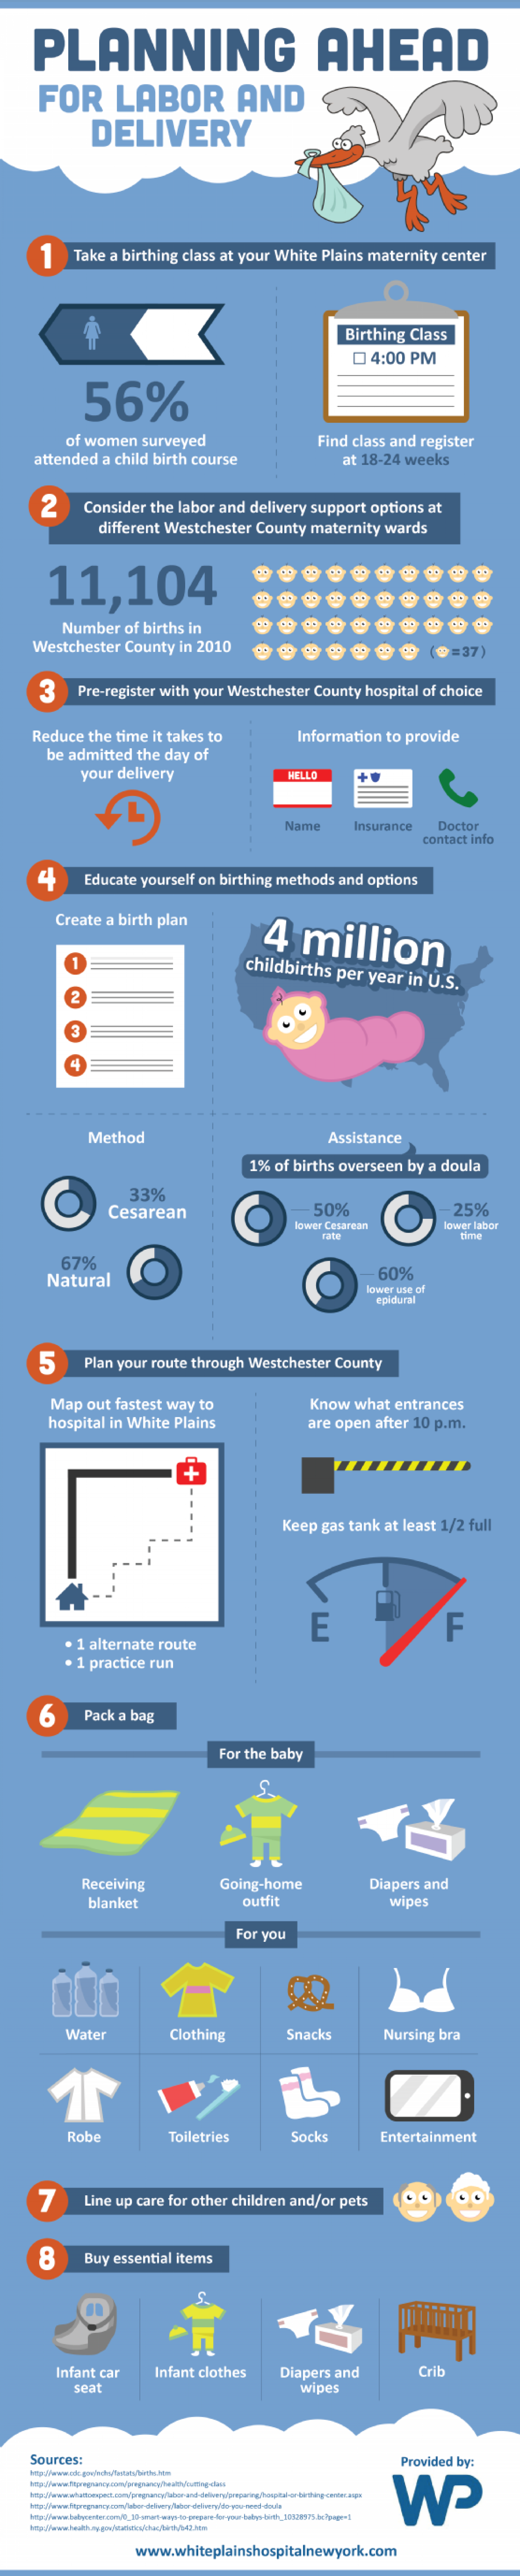 Planning Ahead for Labor and Delivery Infographic